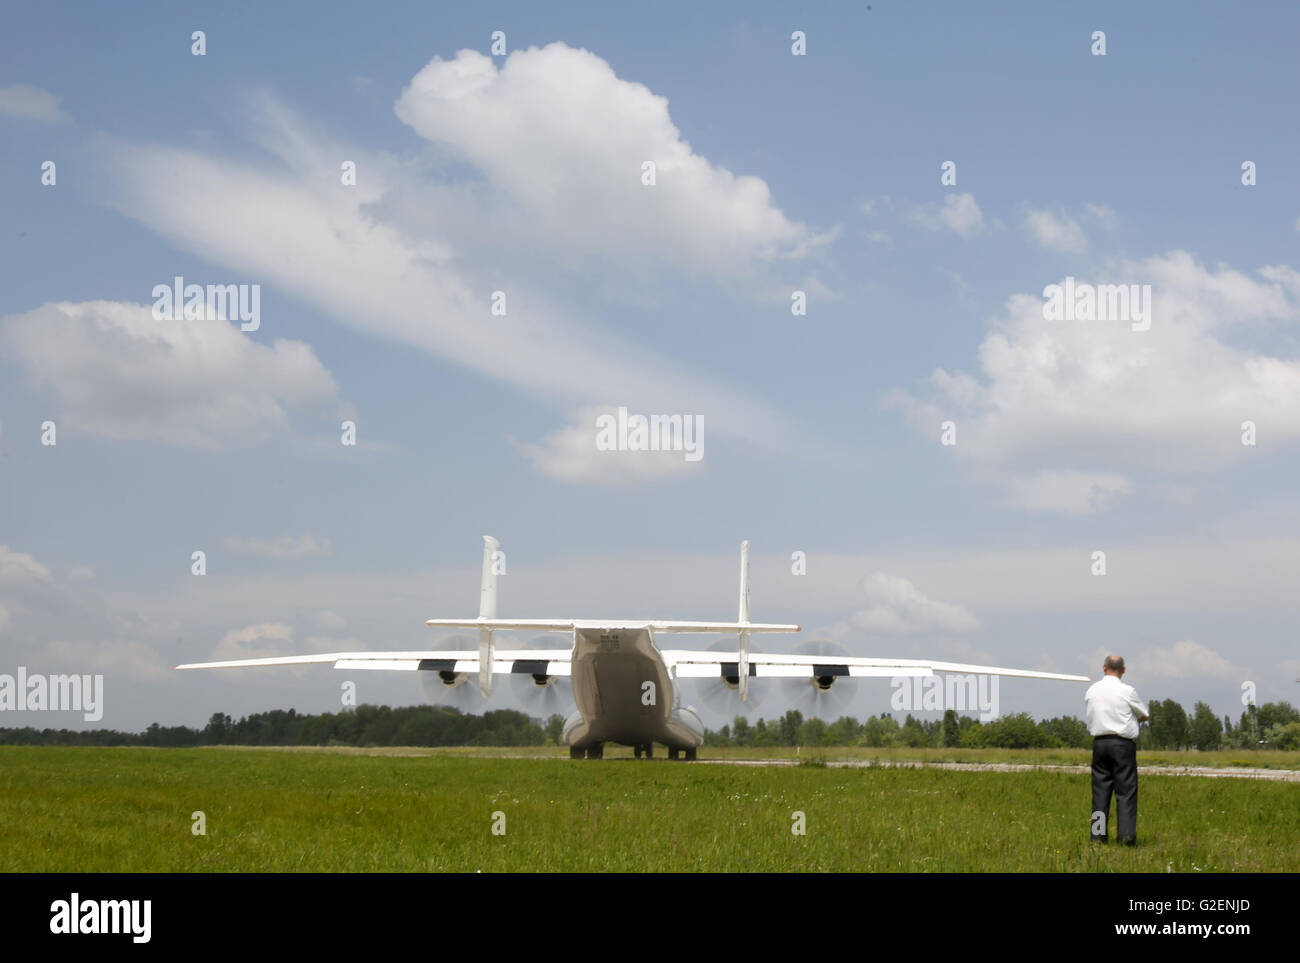 May 30, 2016 - The renovated Antonov An-22 ''Antei'' is seen at the Svyatoshyn airport in Kiev, - Stock Image